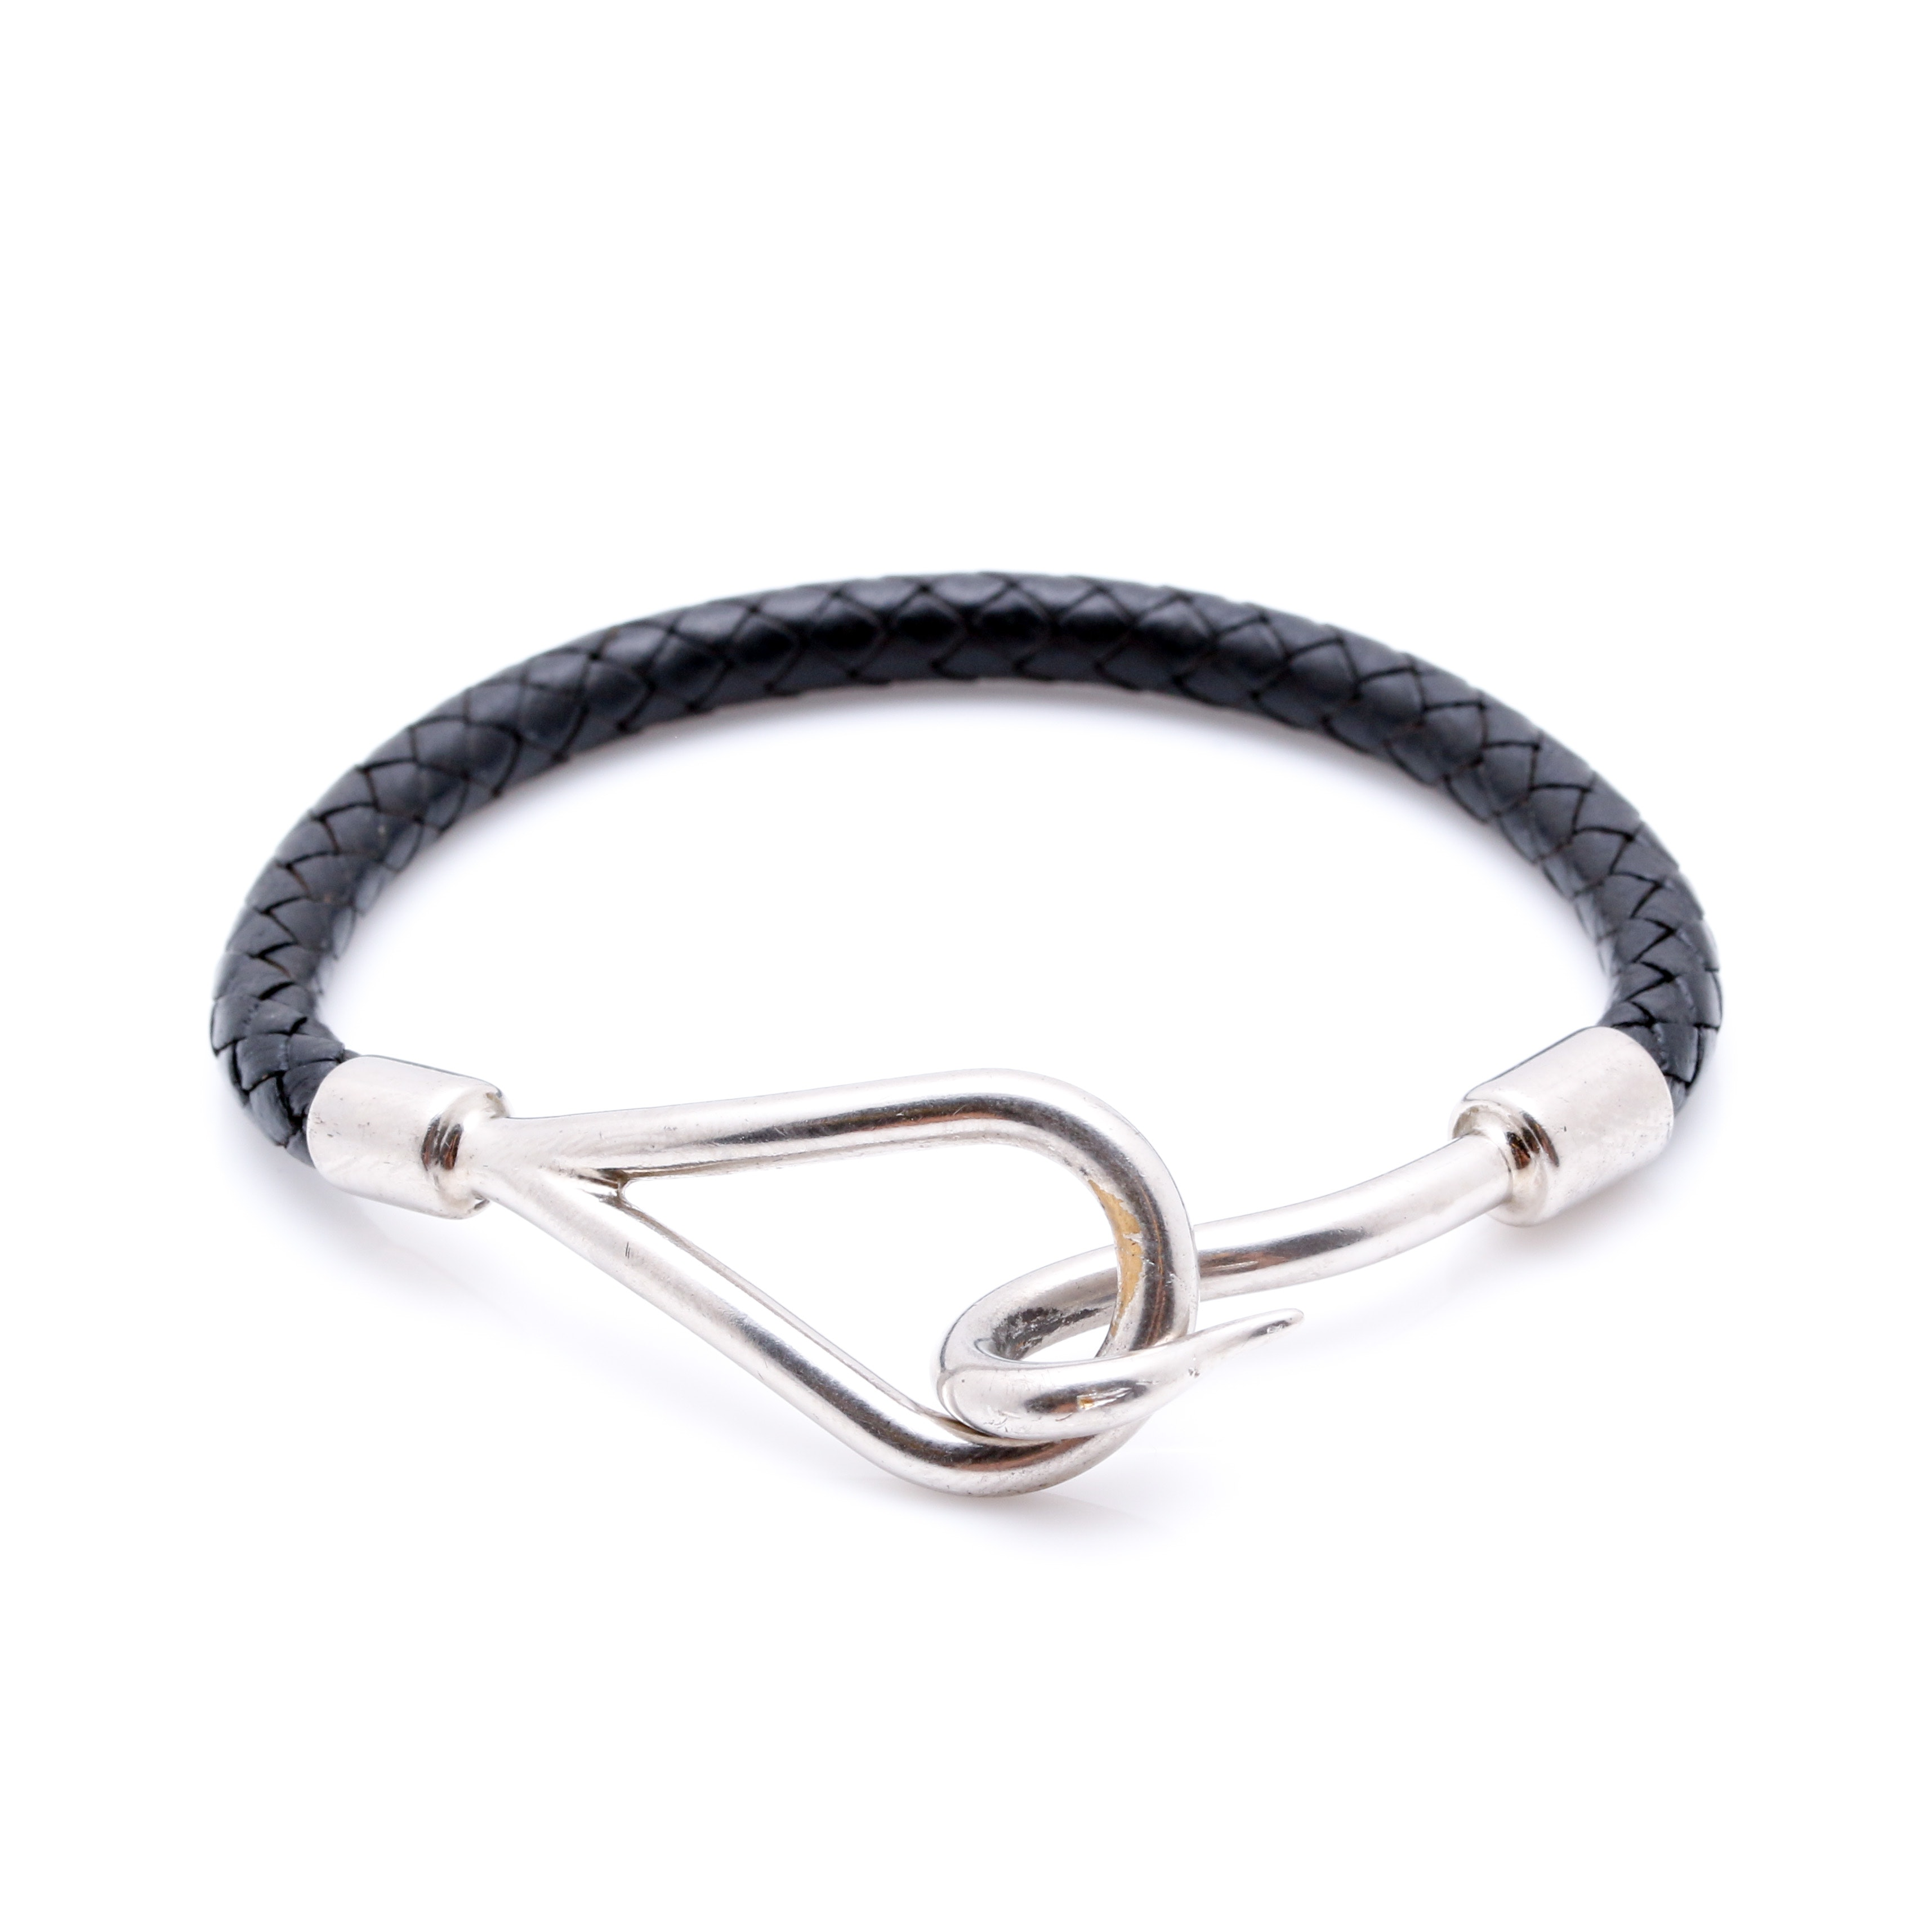 Hermés Jumbo Hook Black Leather Bracelet